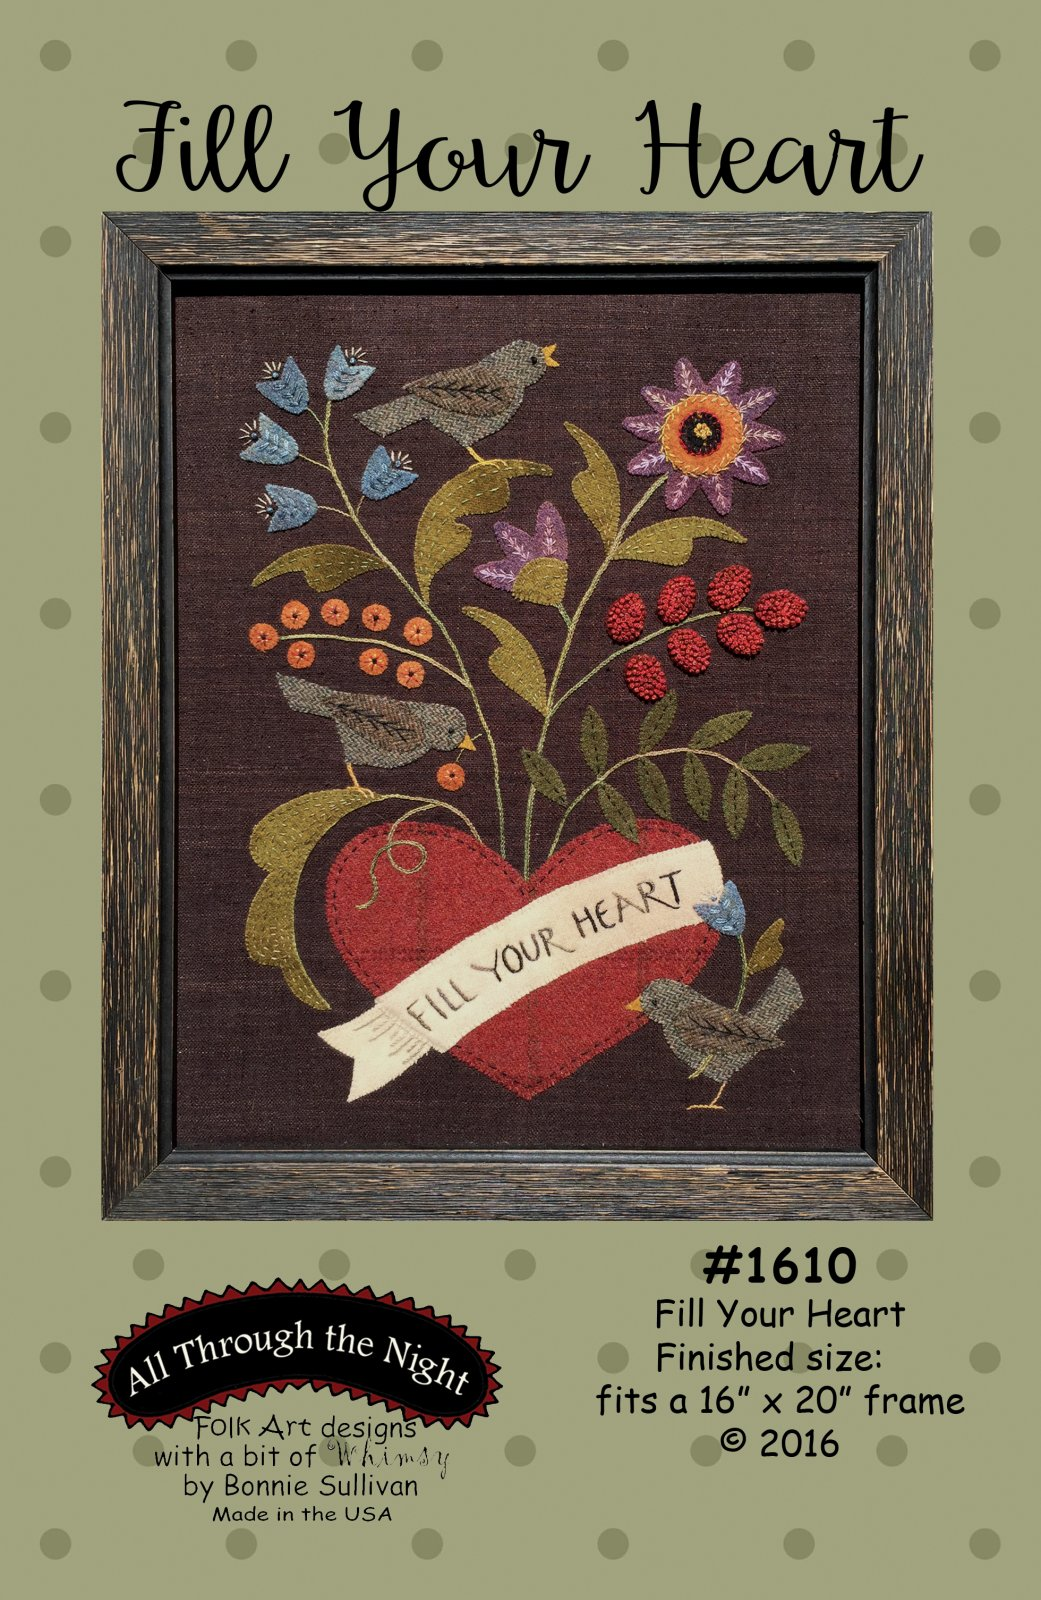 1610 - Fill Your Heart